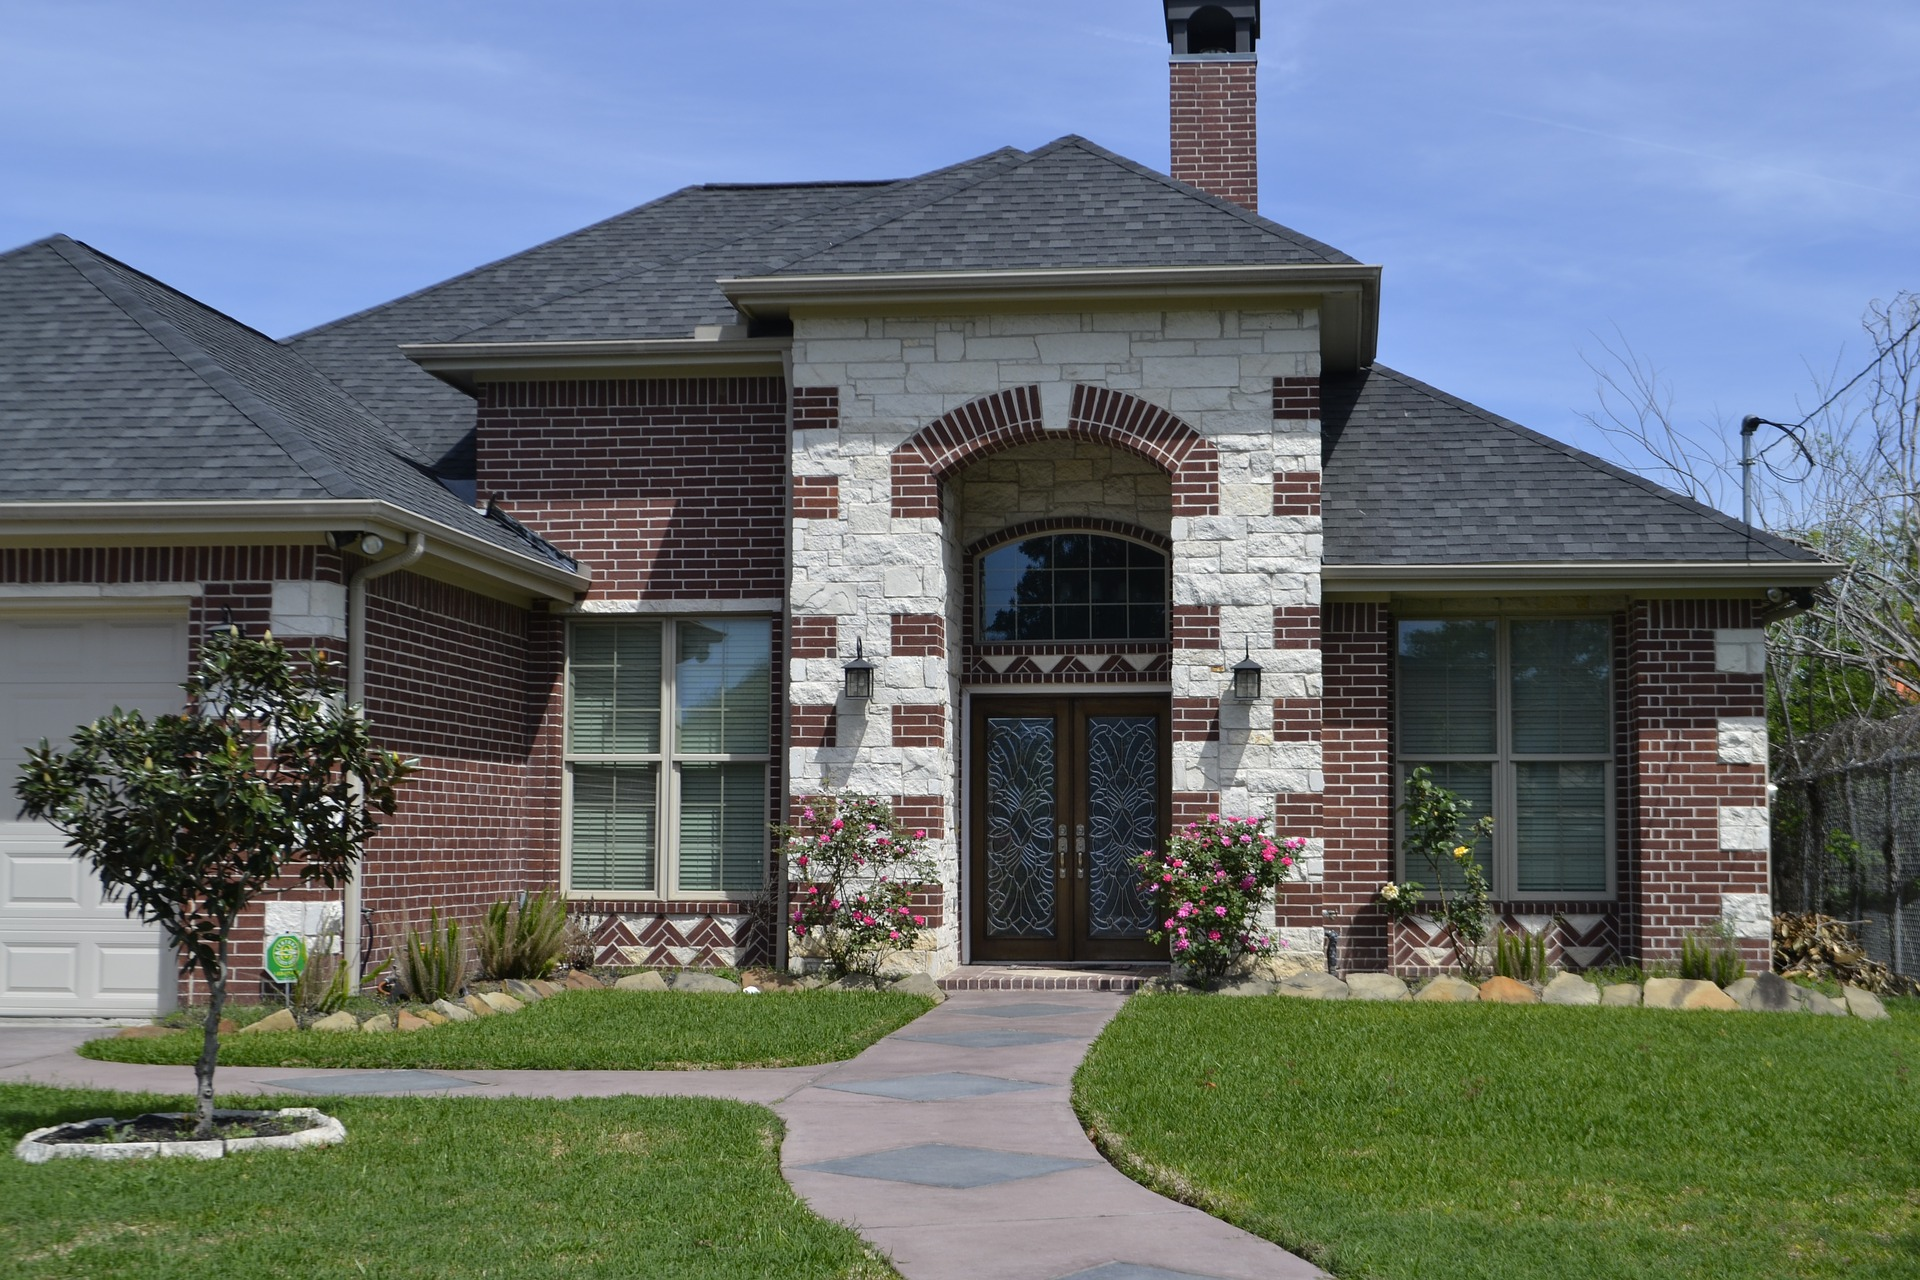 front entrance to a large brick home, beautifully manicured front lawn and landscape design